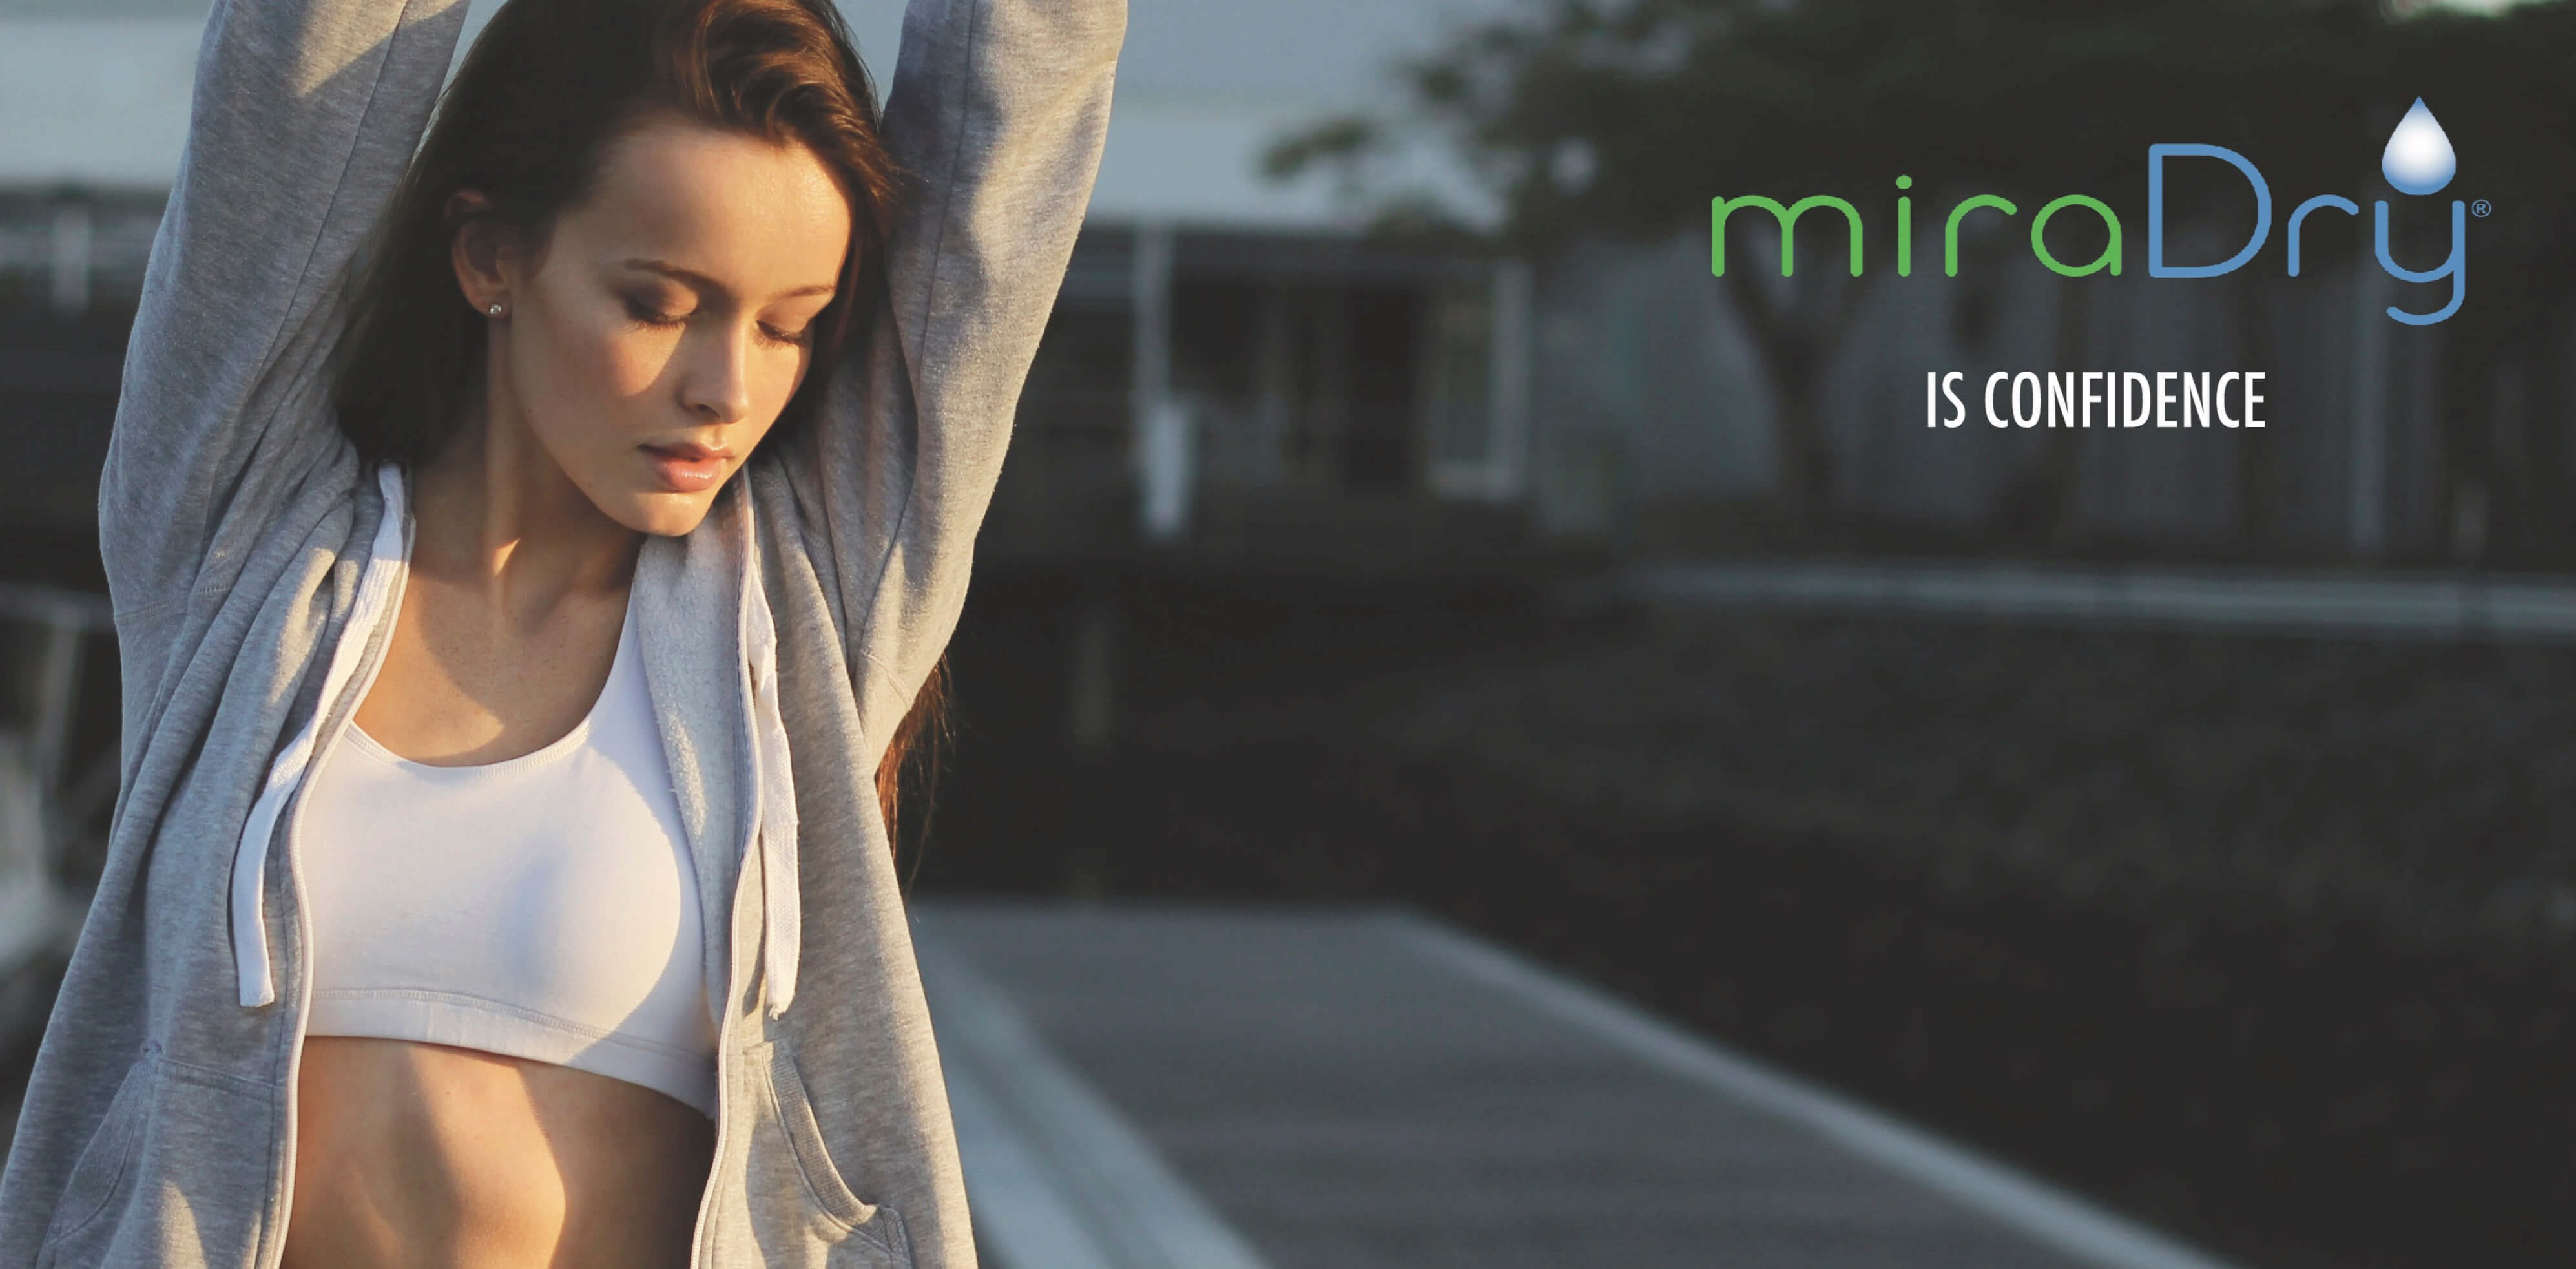 Stay dry with miraDry - No downtime, Non-invasive & FDA approved, miraDry is your perfect solution for any unwanted or excess sweat!